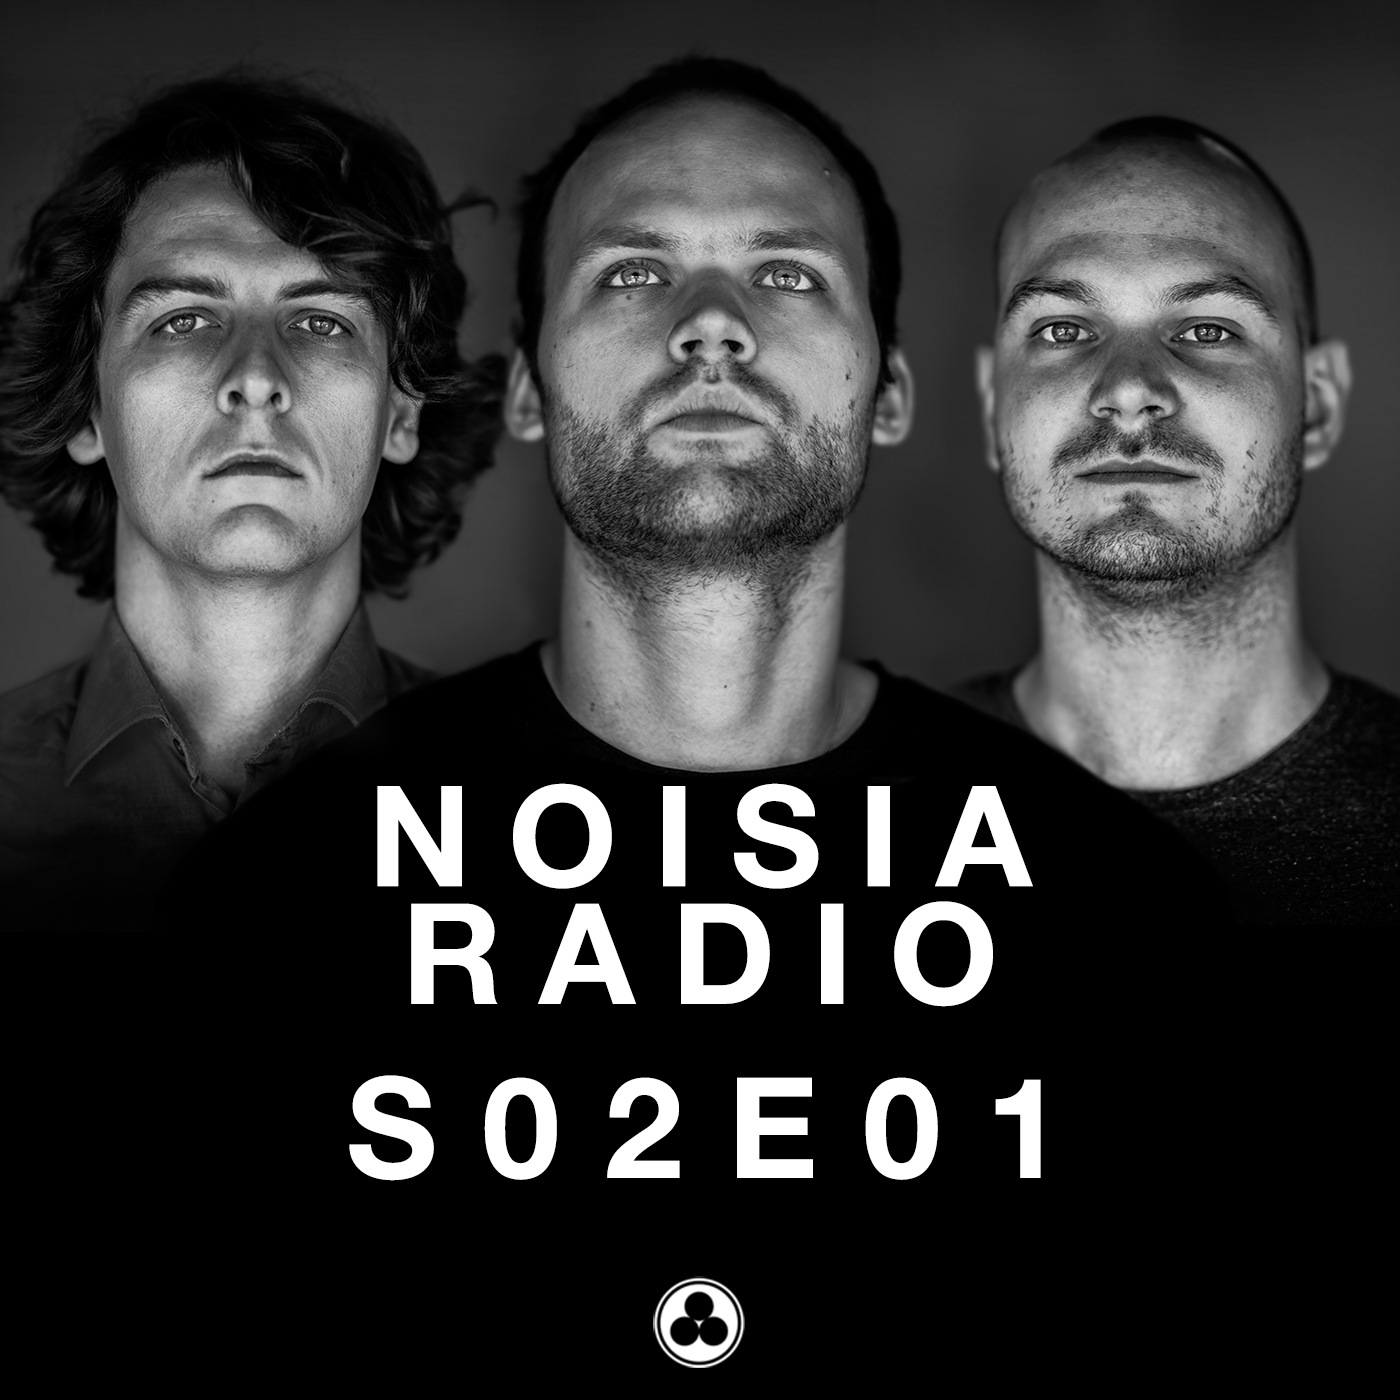 Noisia Radio S02E01